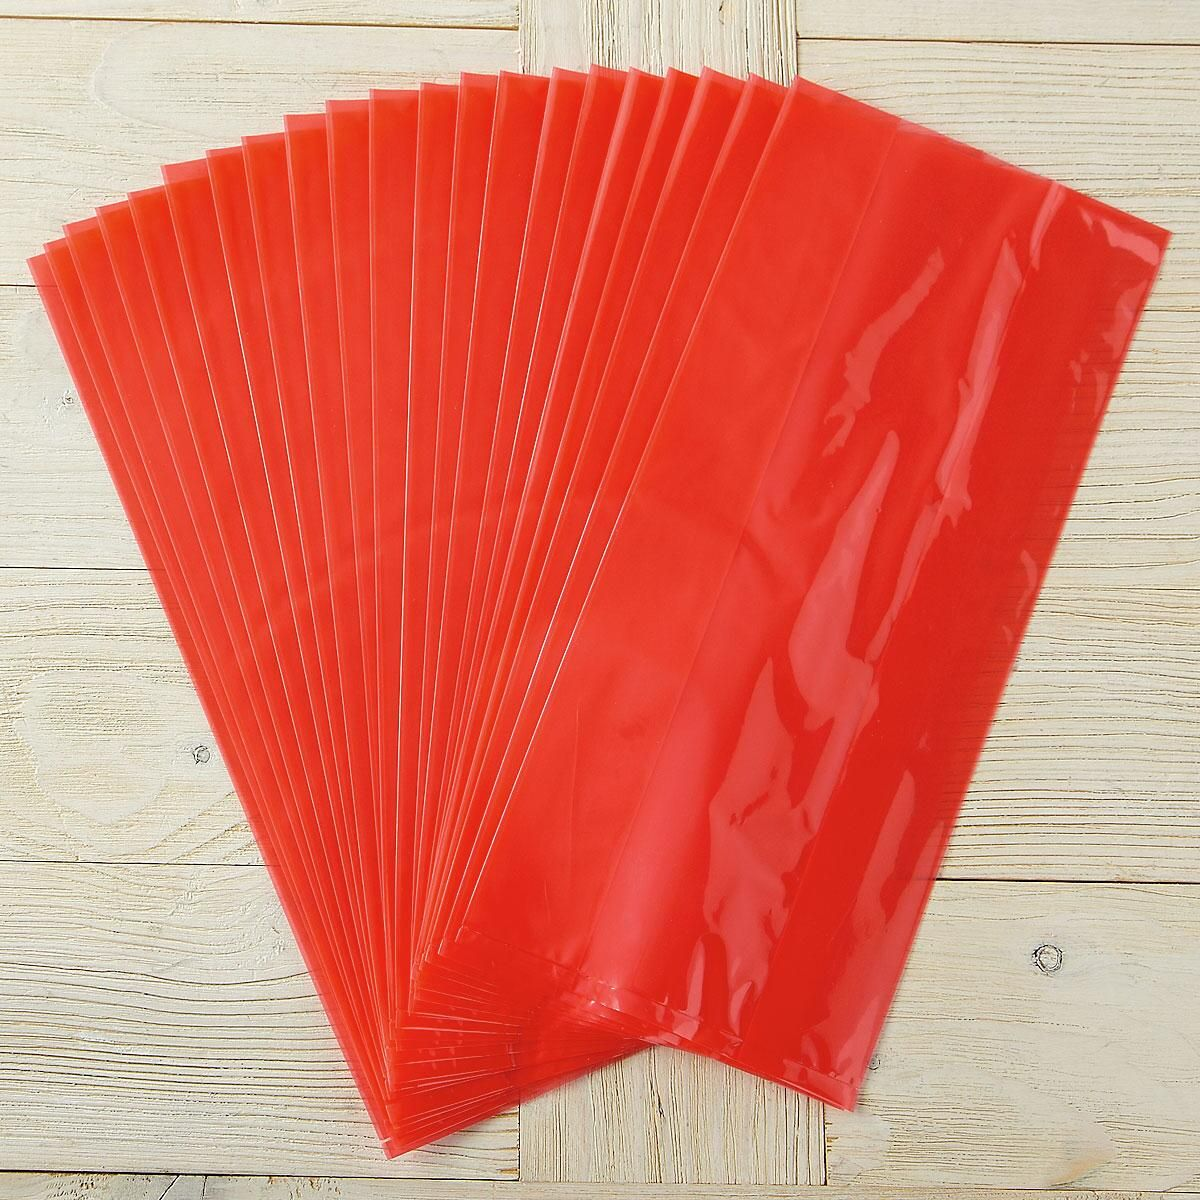 Red Cello Bags